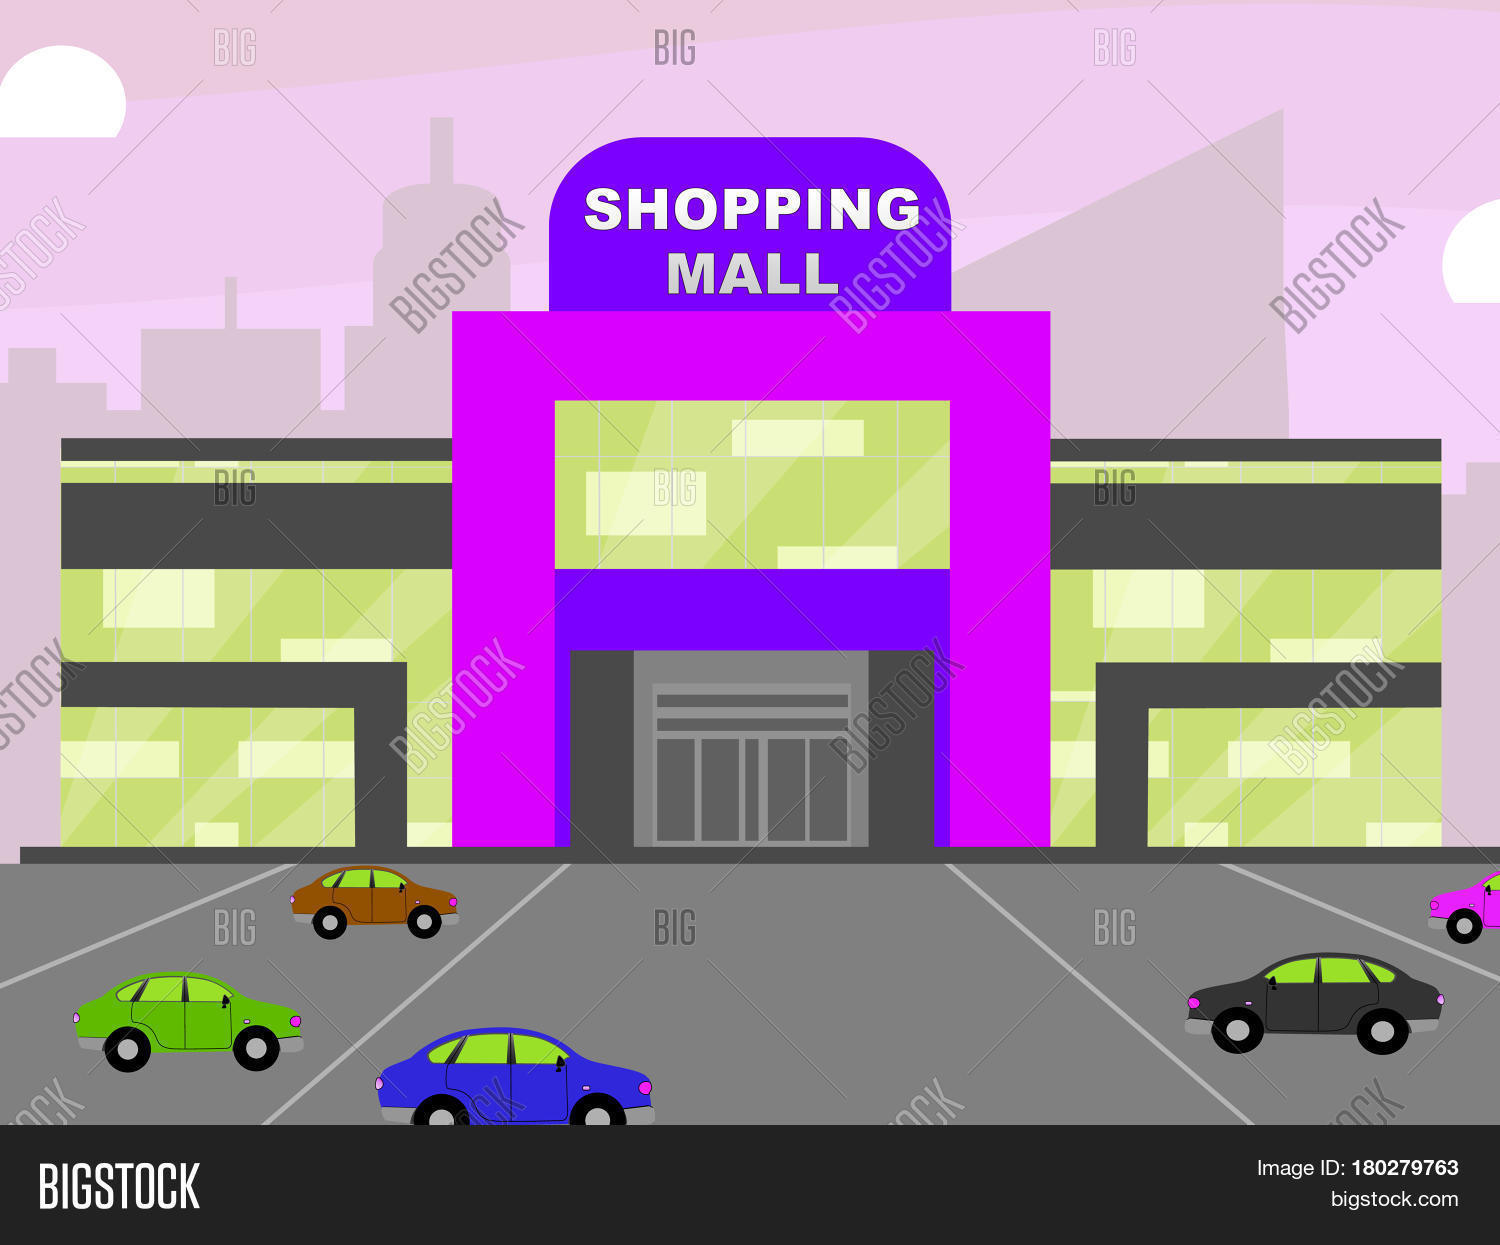 describing the shopping mall However, in north america and the philippines, the common term used is shopping mall  molenda, jeff describing a shopping center.